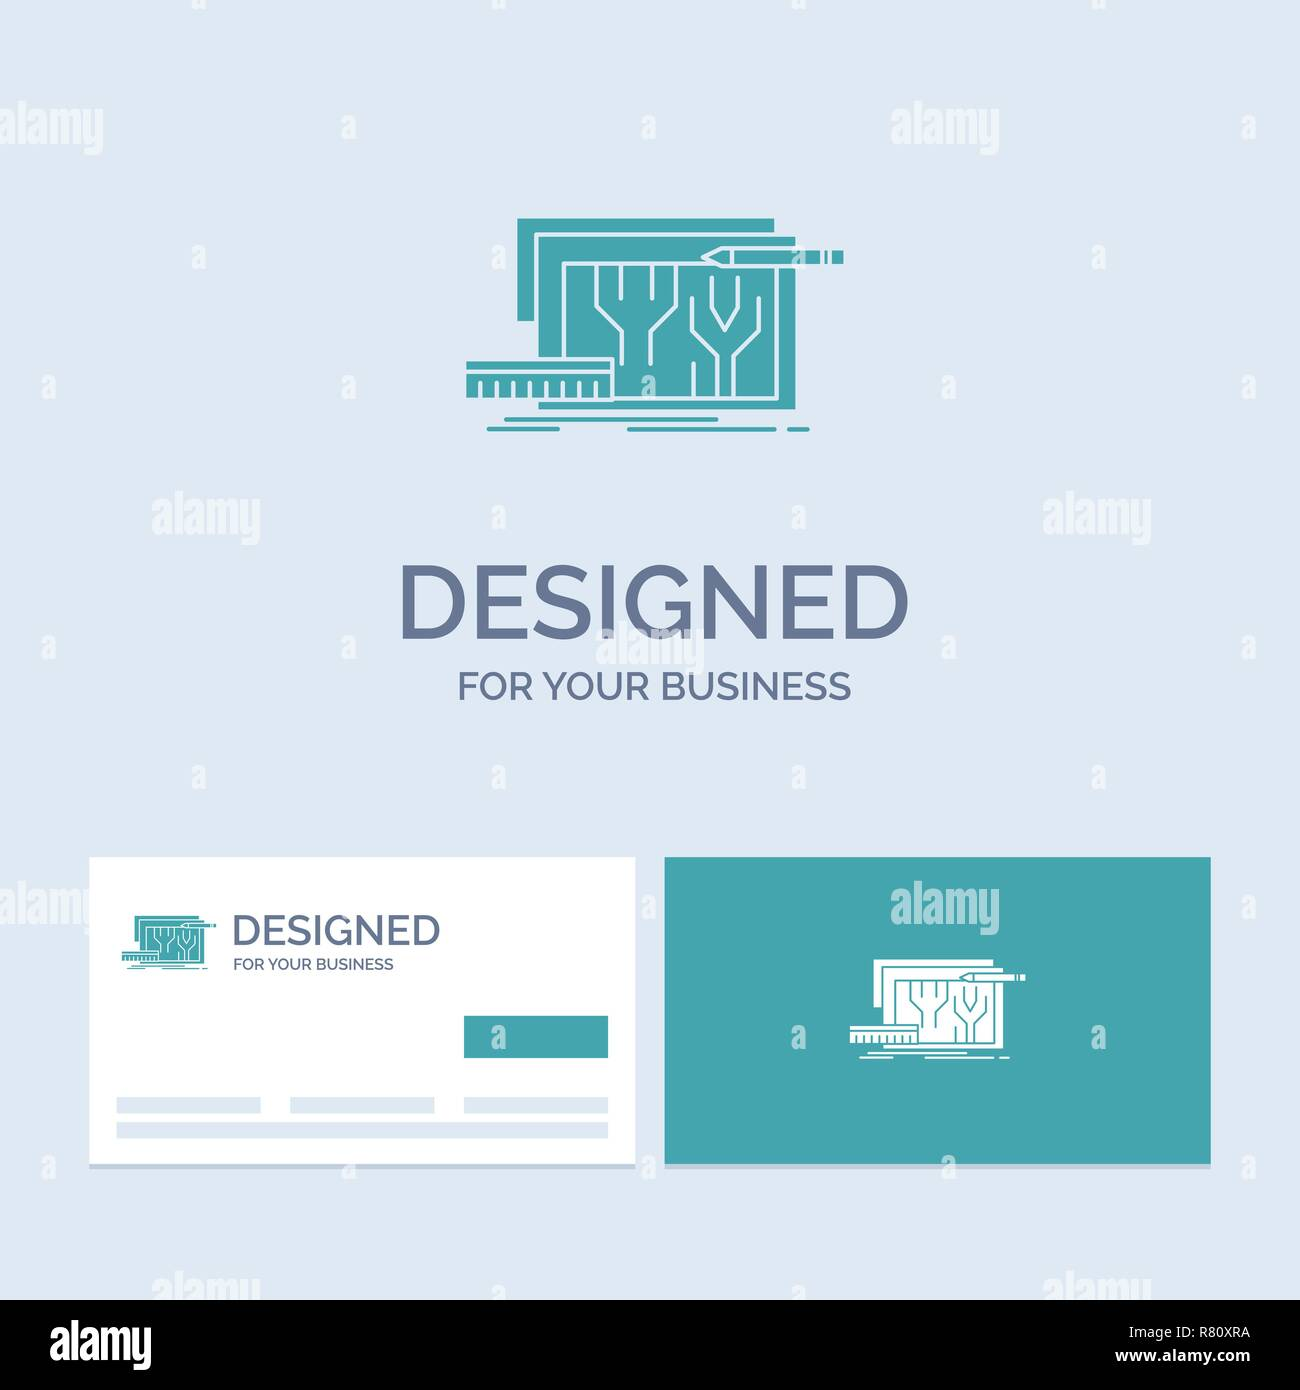 Architecture, blueprint, circuit, design, engineering Business Logo Glyph Icon Symbol for your business. Turquoise Business Cards with Brand logo temp - Stock Image